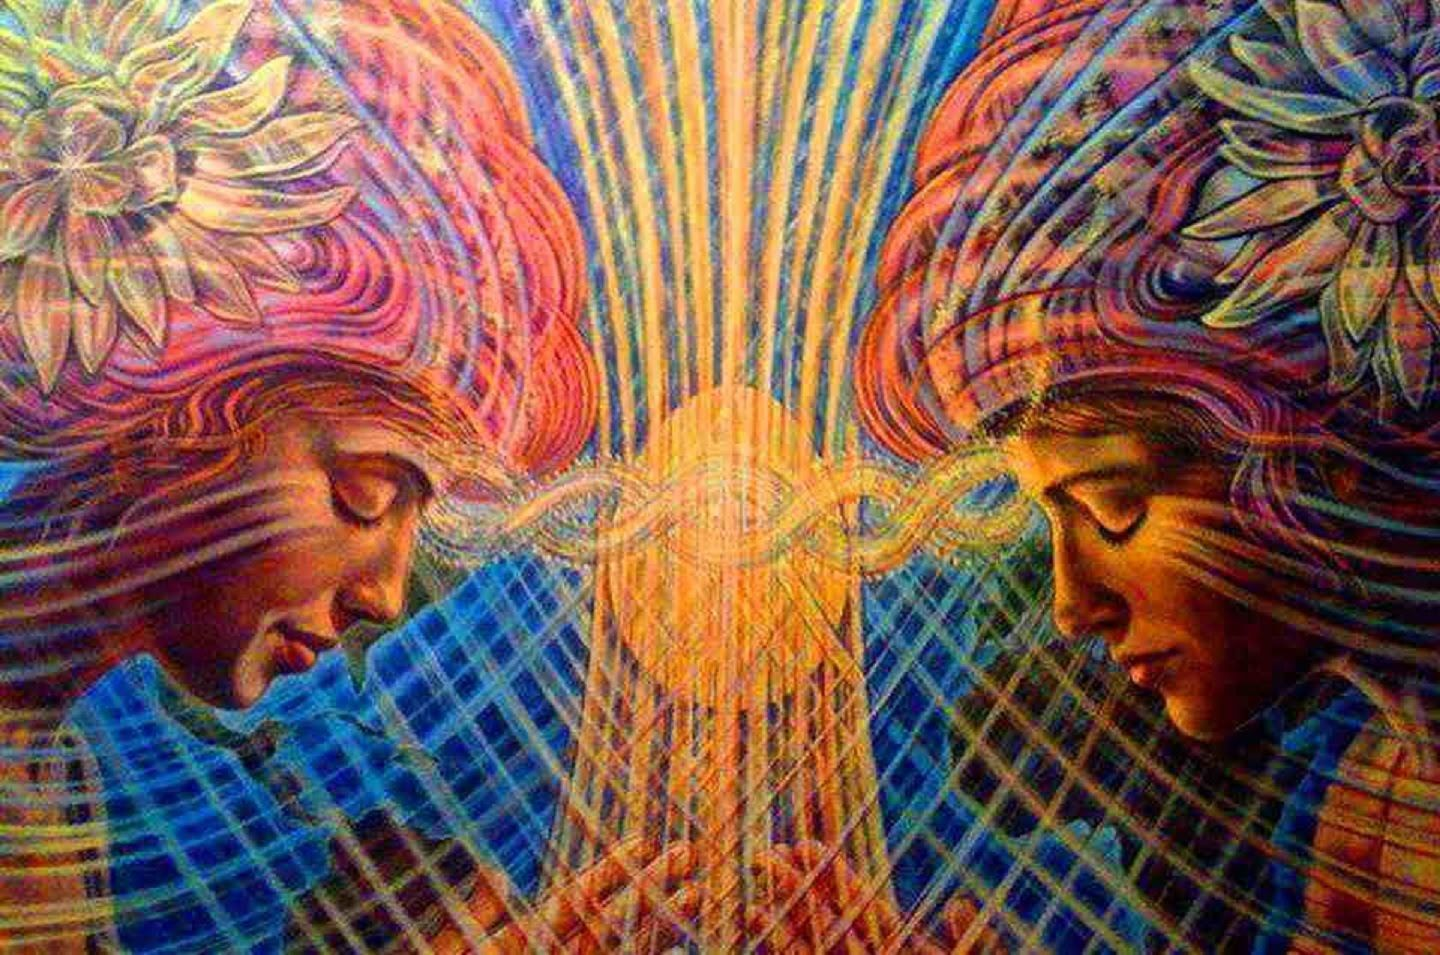 How to Use Your Gift of Telepathy